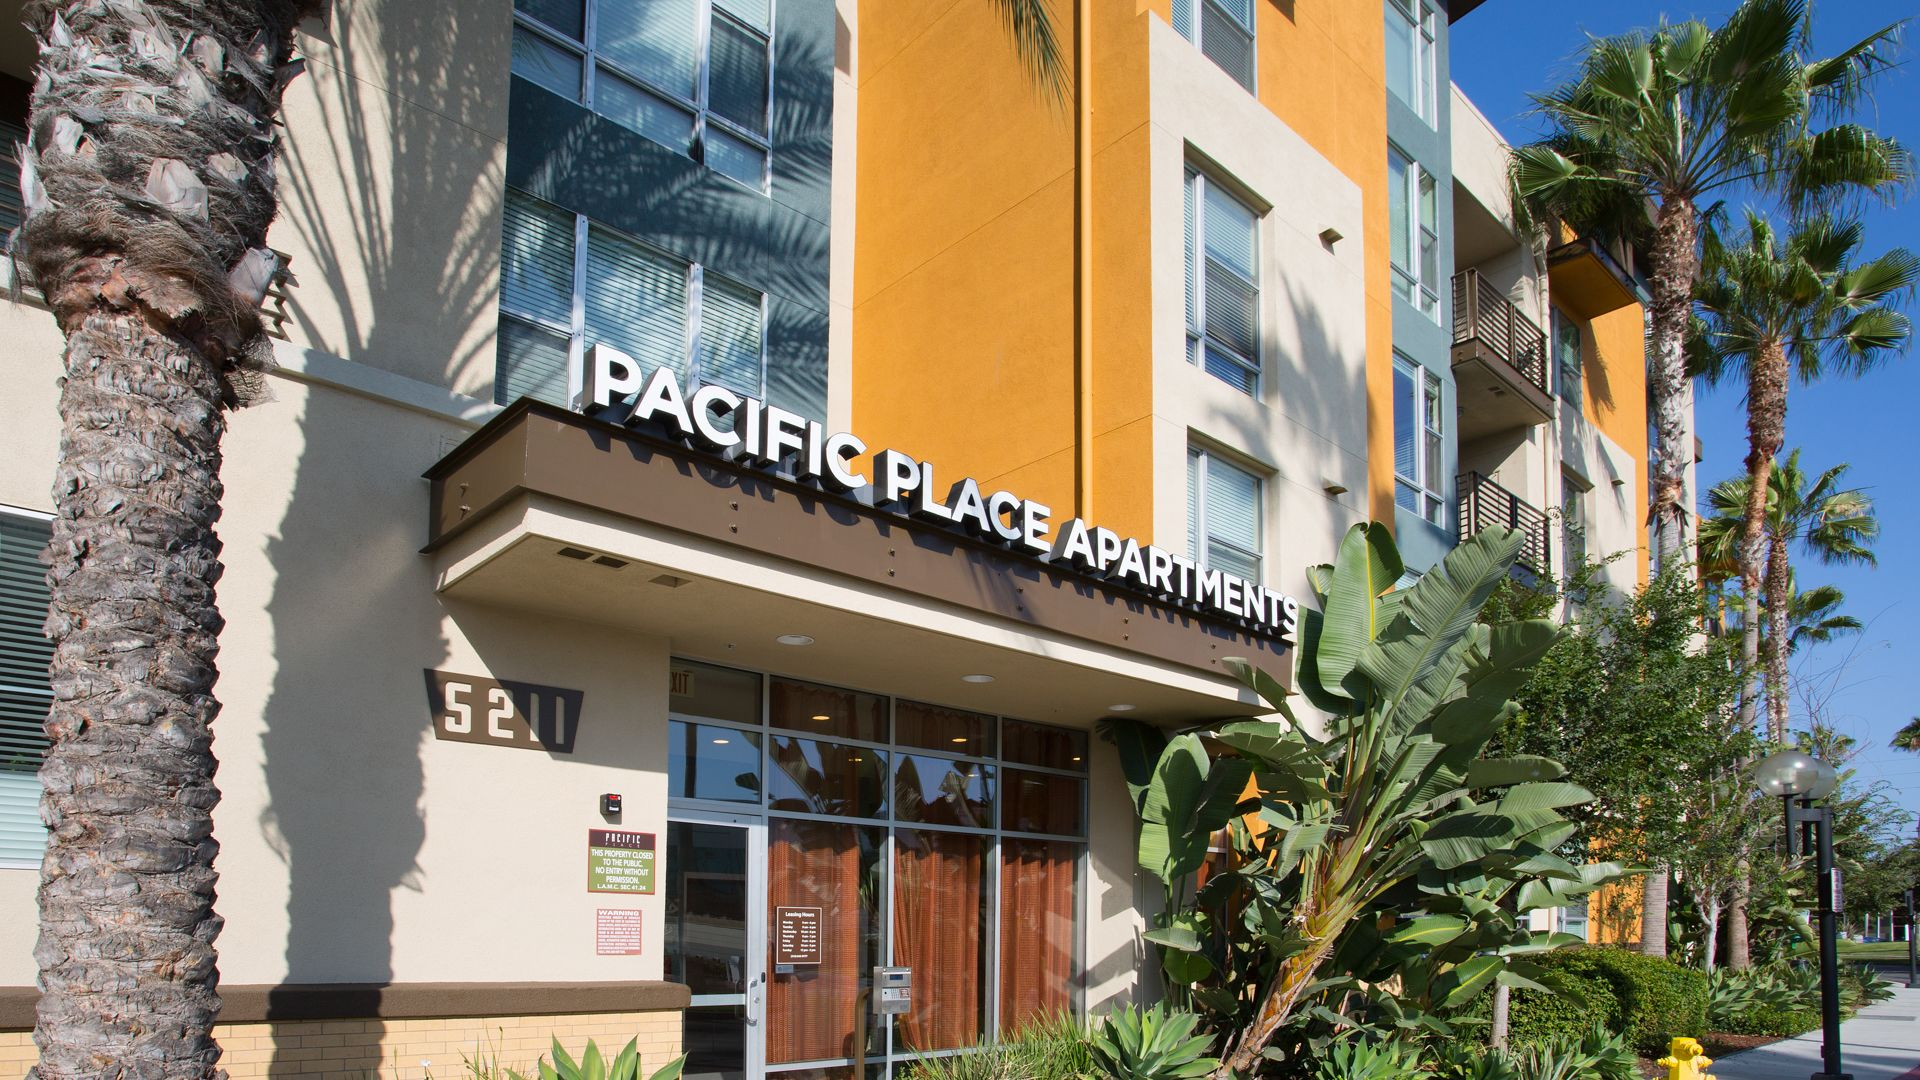 Pacific Place Apartments - Entrance